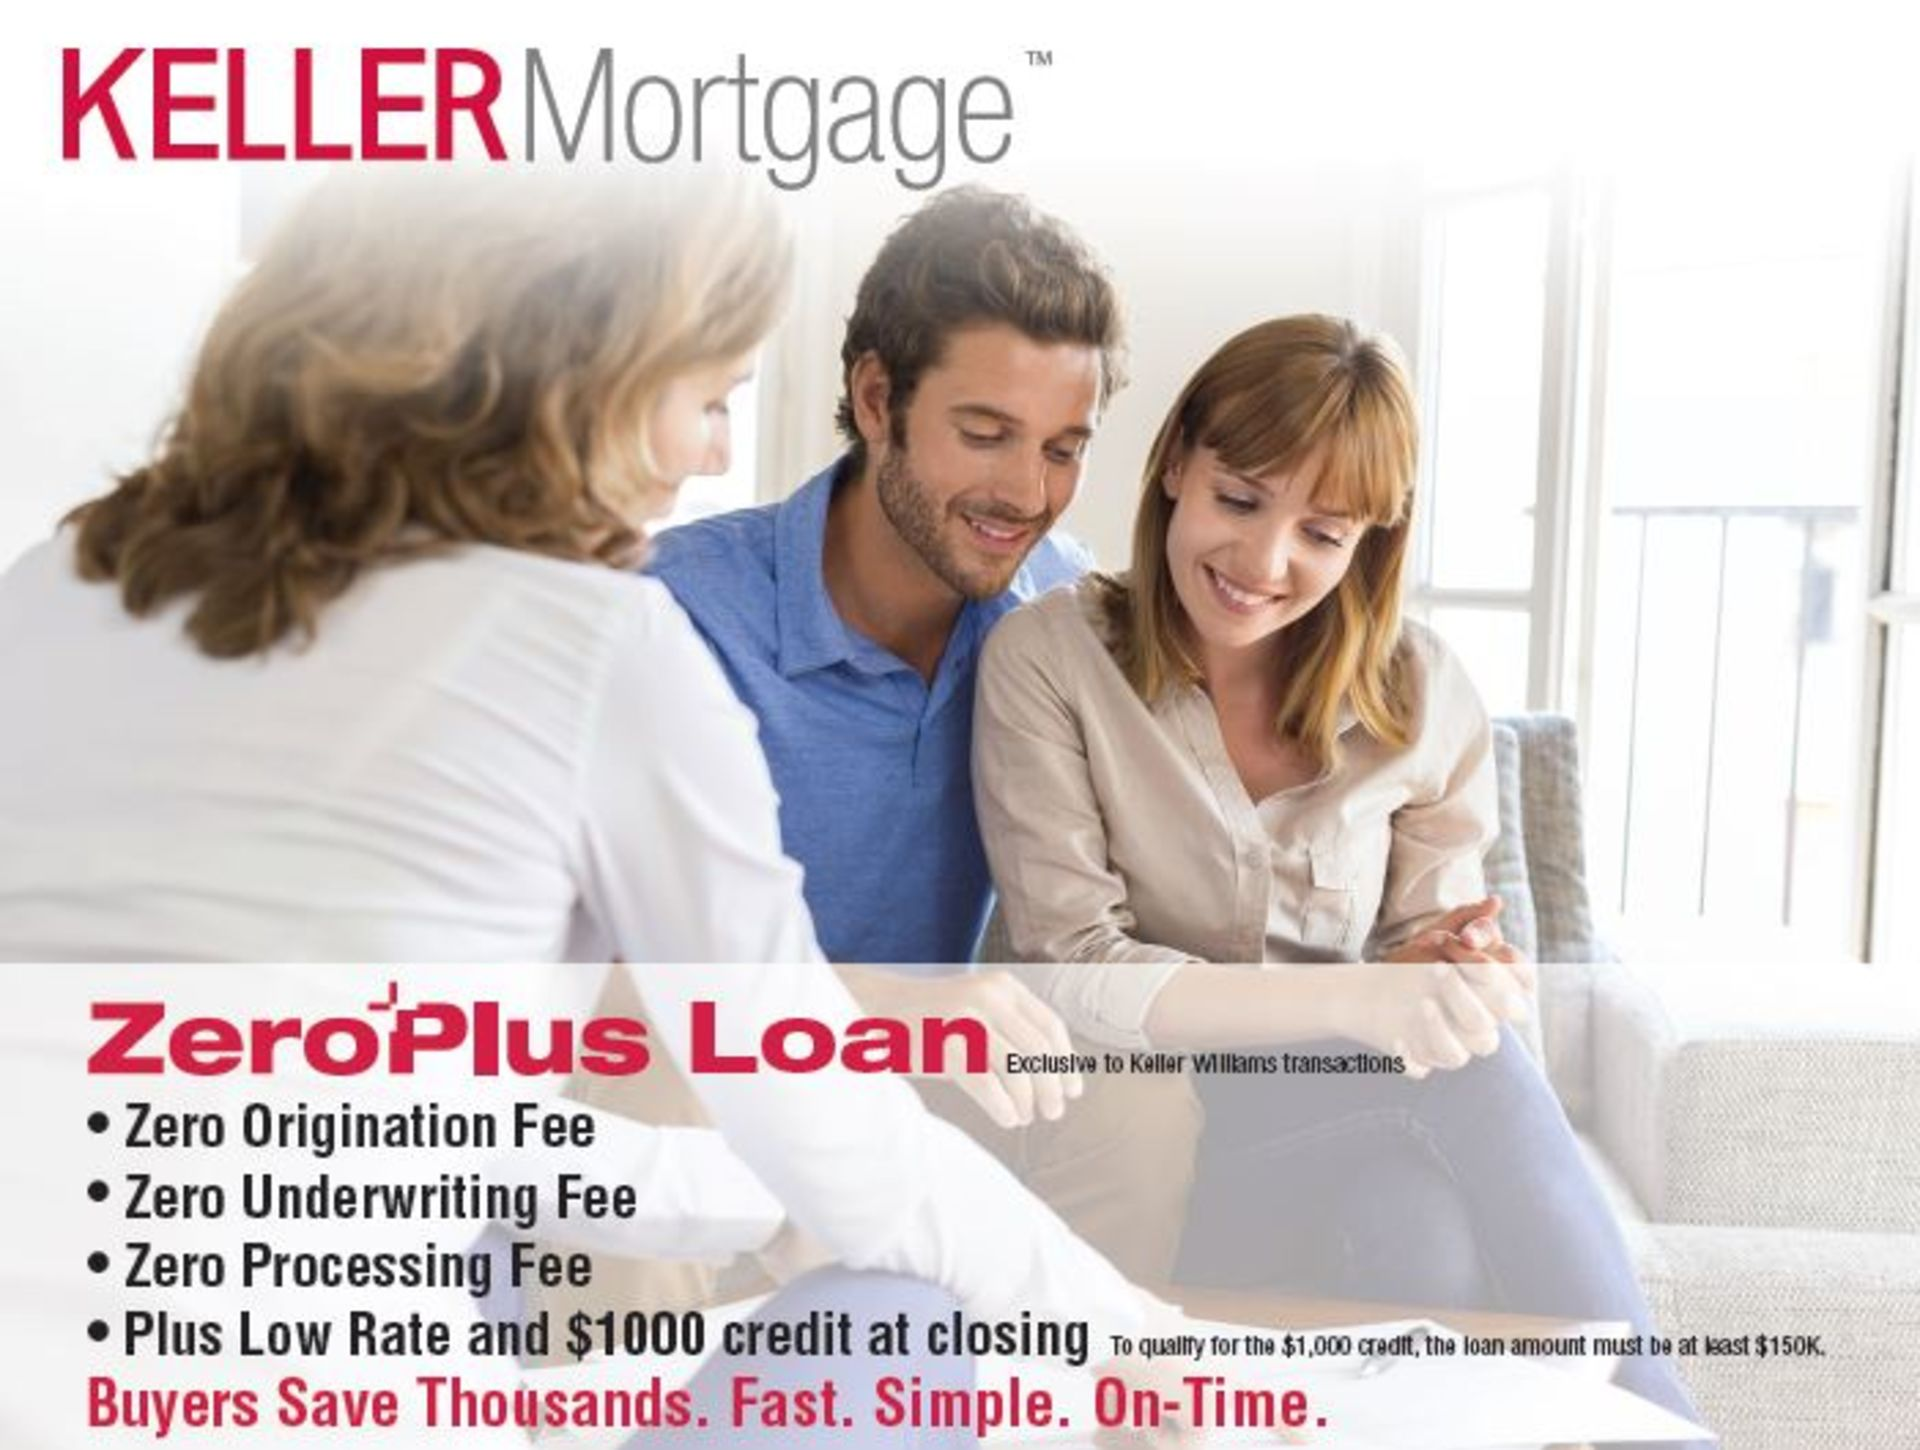 Keller Mortgage